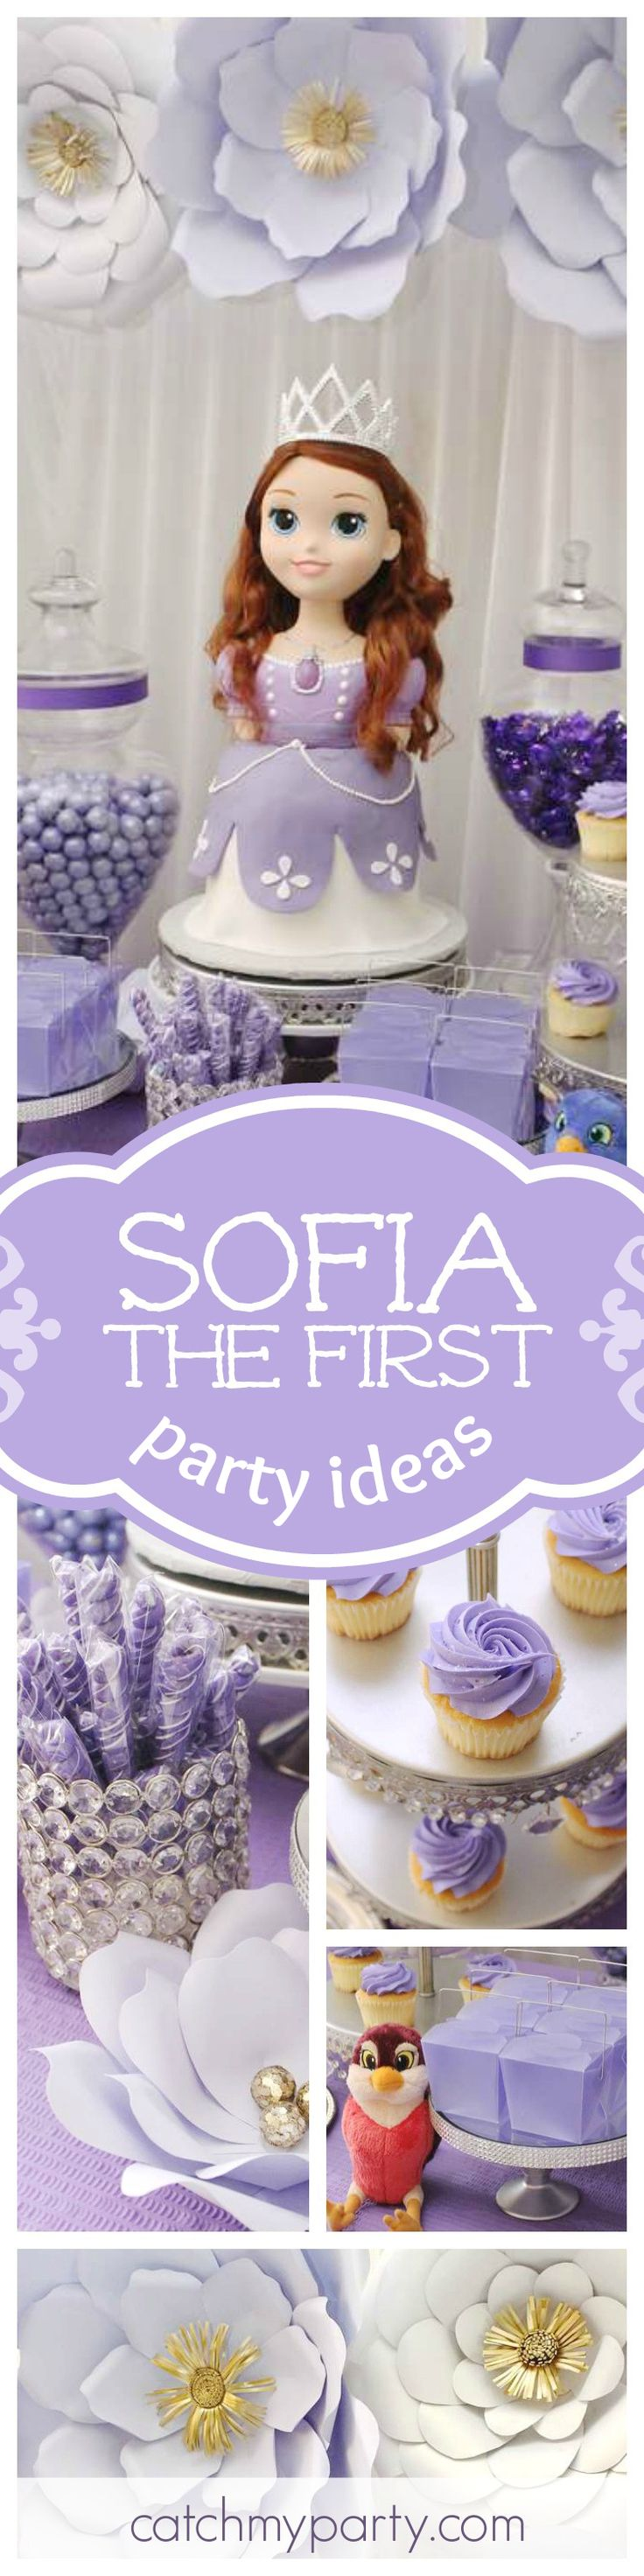 Don't miss this gorgeous Sofia the First birthday party. Just look at the princess cake!! It's amazing! See more party ideas and share yours at CatchMyParty.com